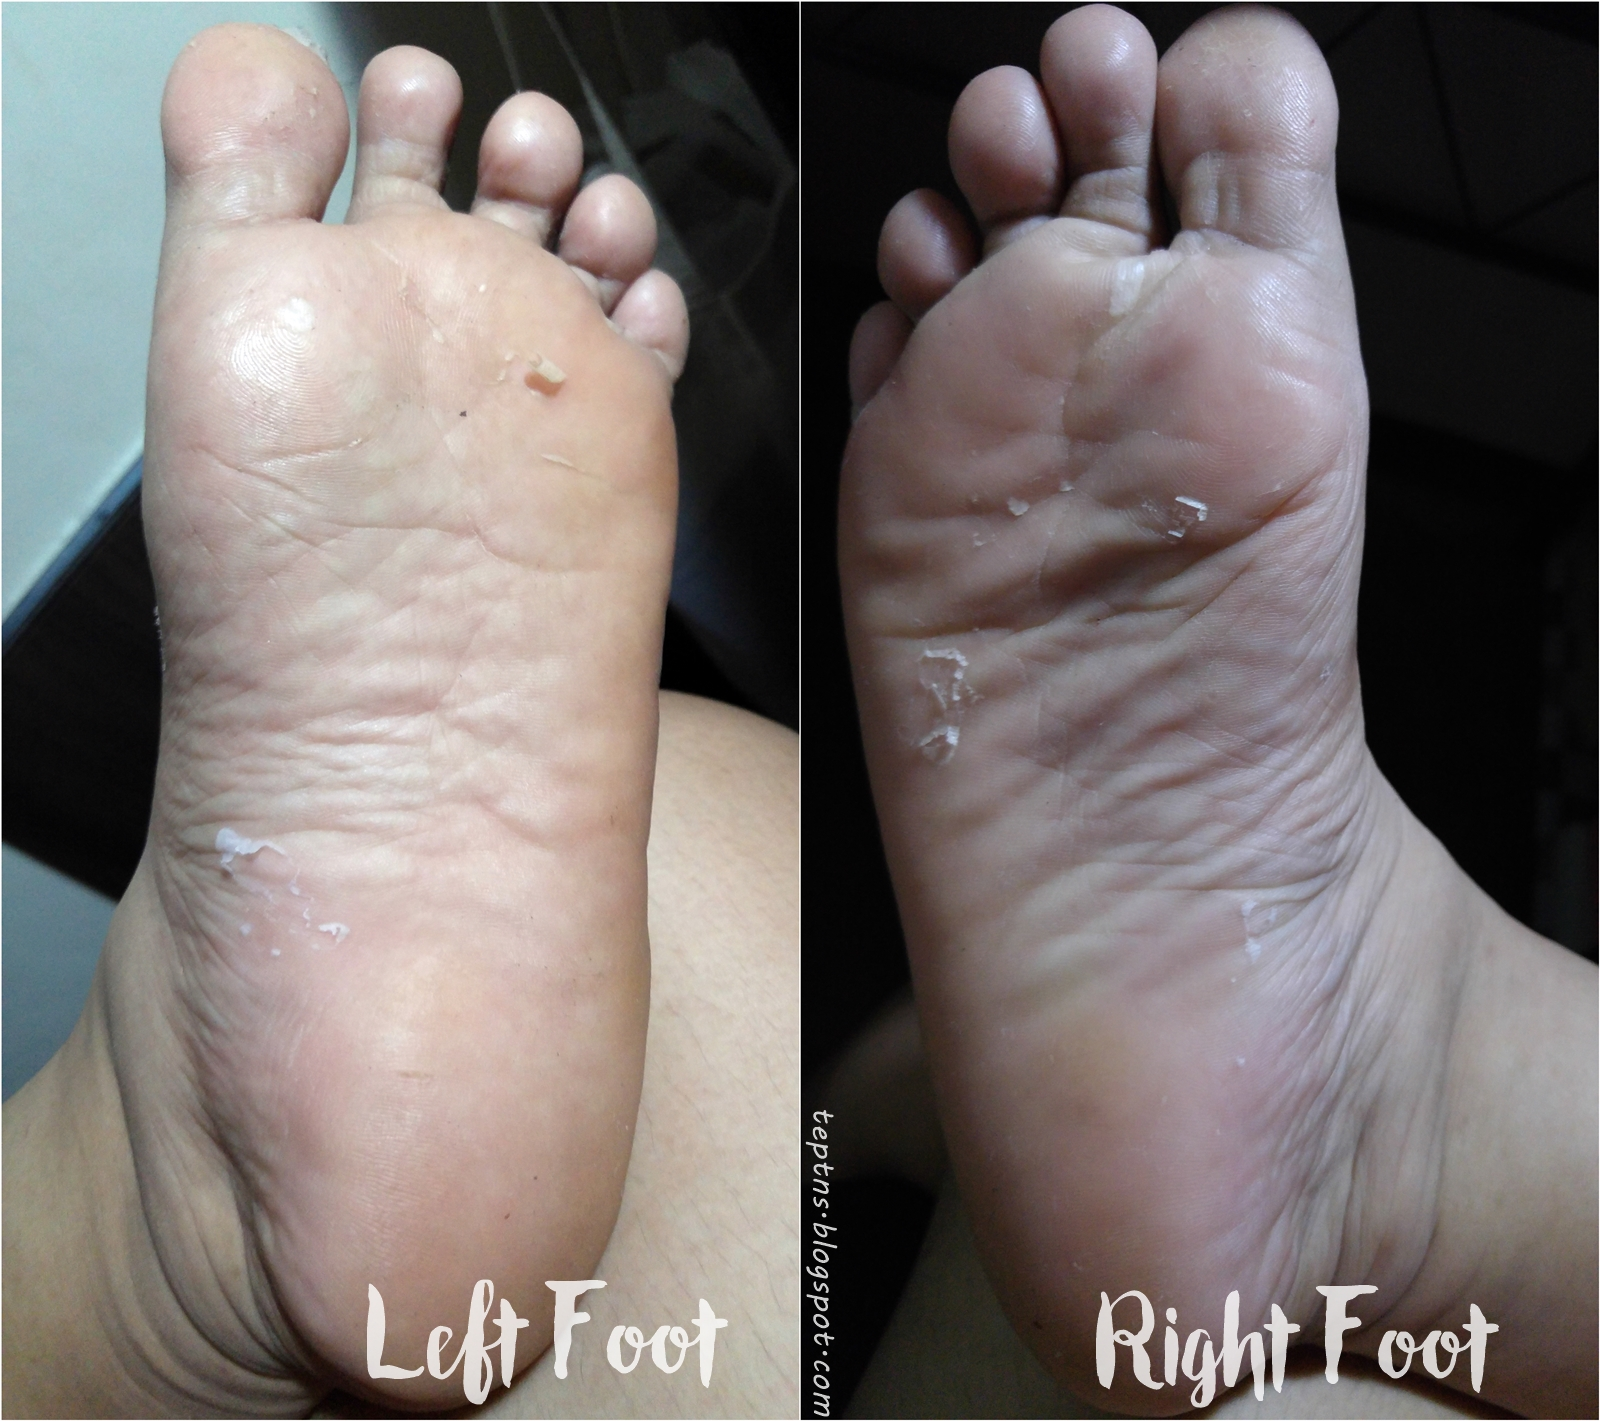 ec168e30acb611 Purederm s Exfoliating Foot Mask Review - Tep Tries New Stuff